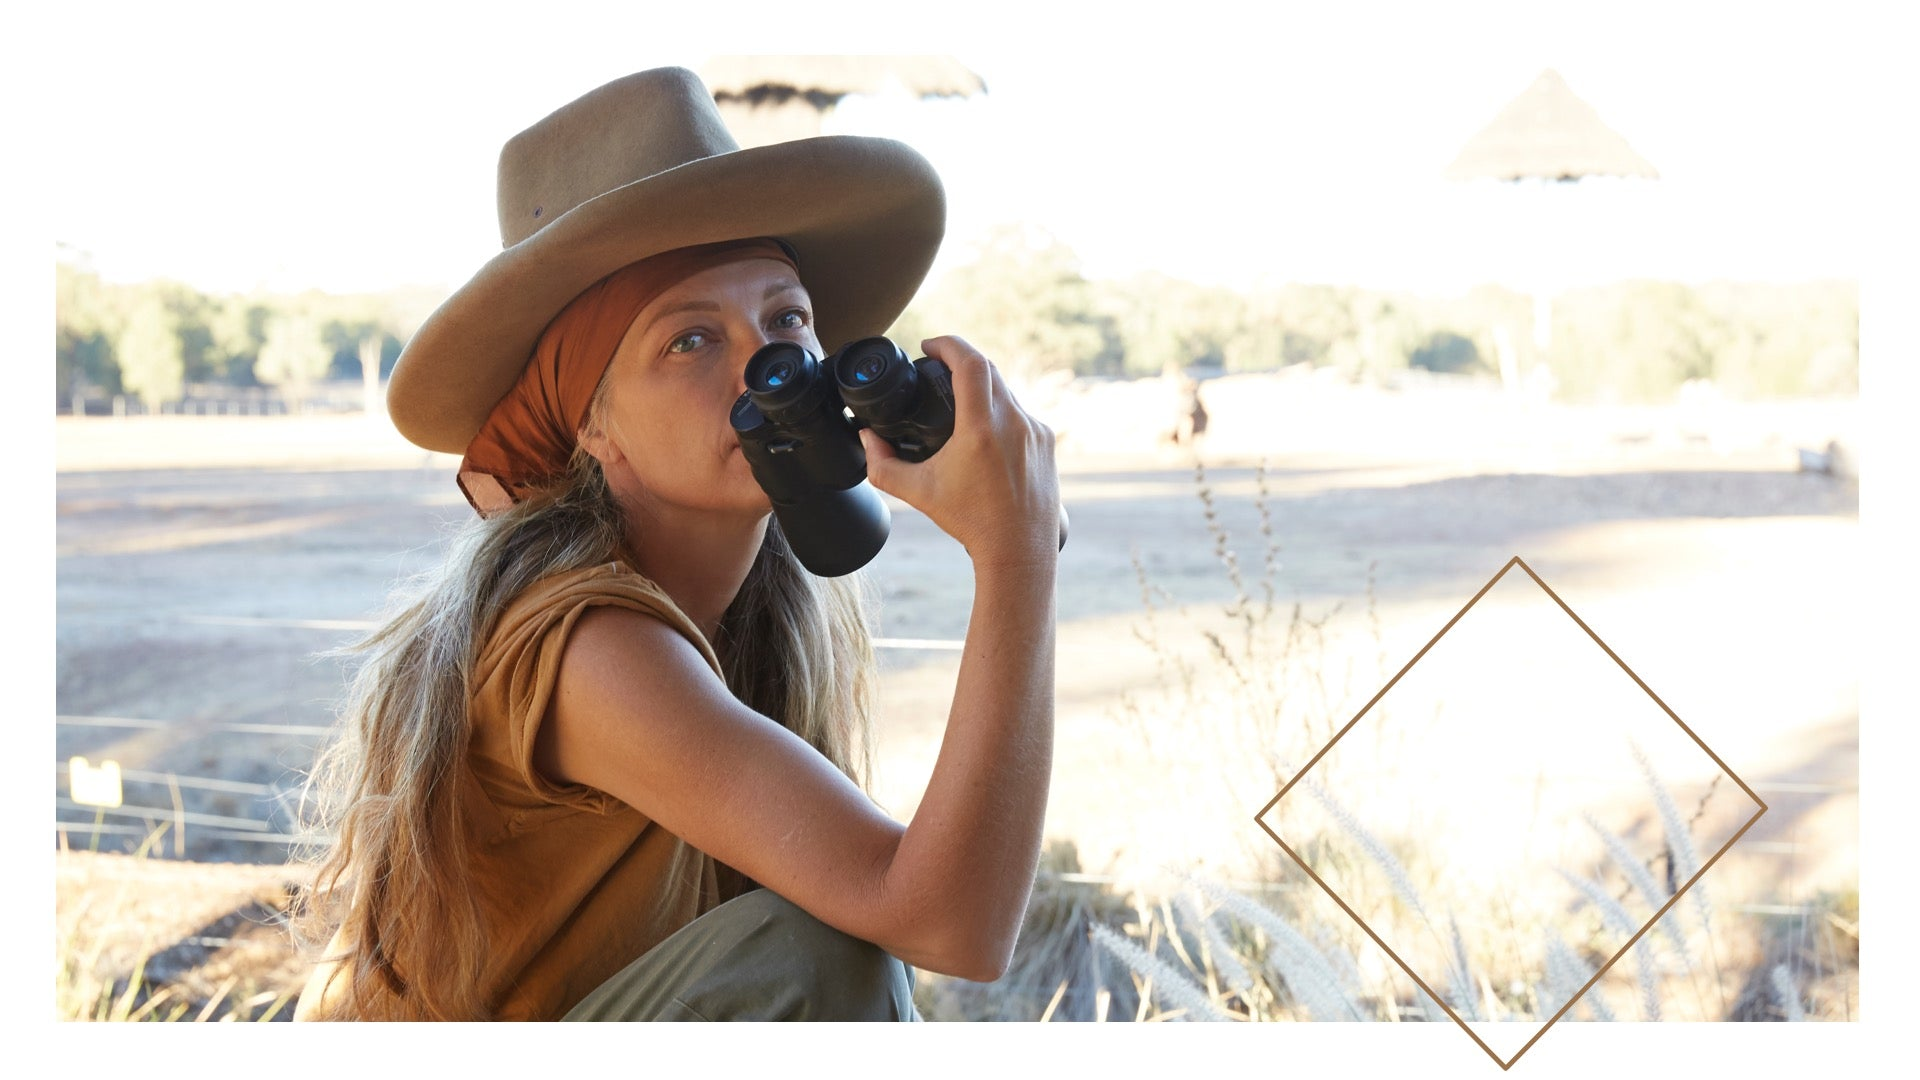 Sheree sitting outside holding a pair of binoculars